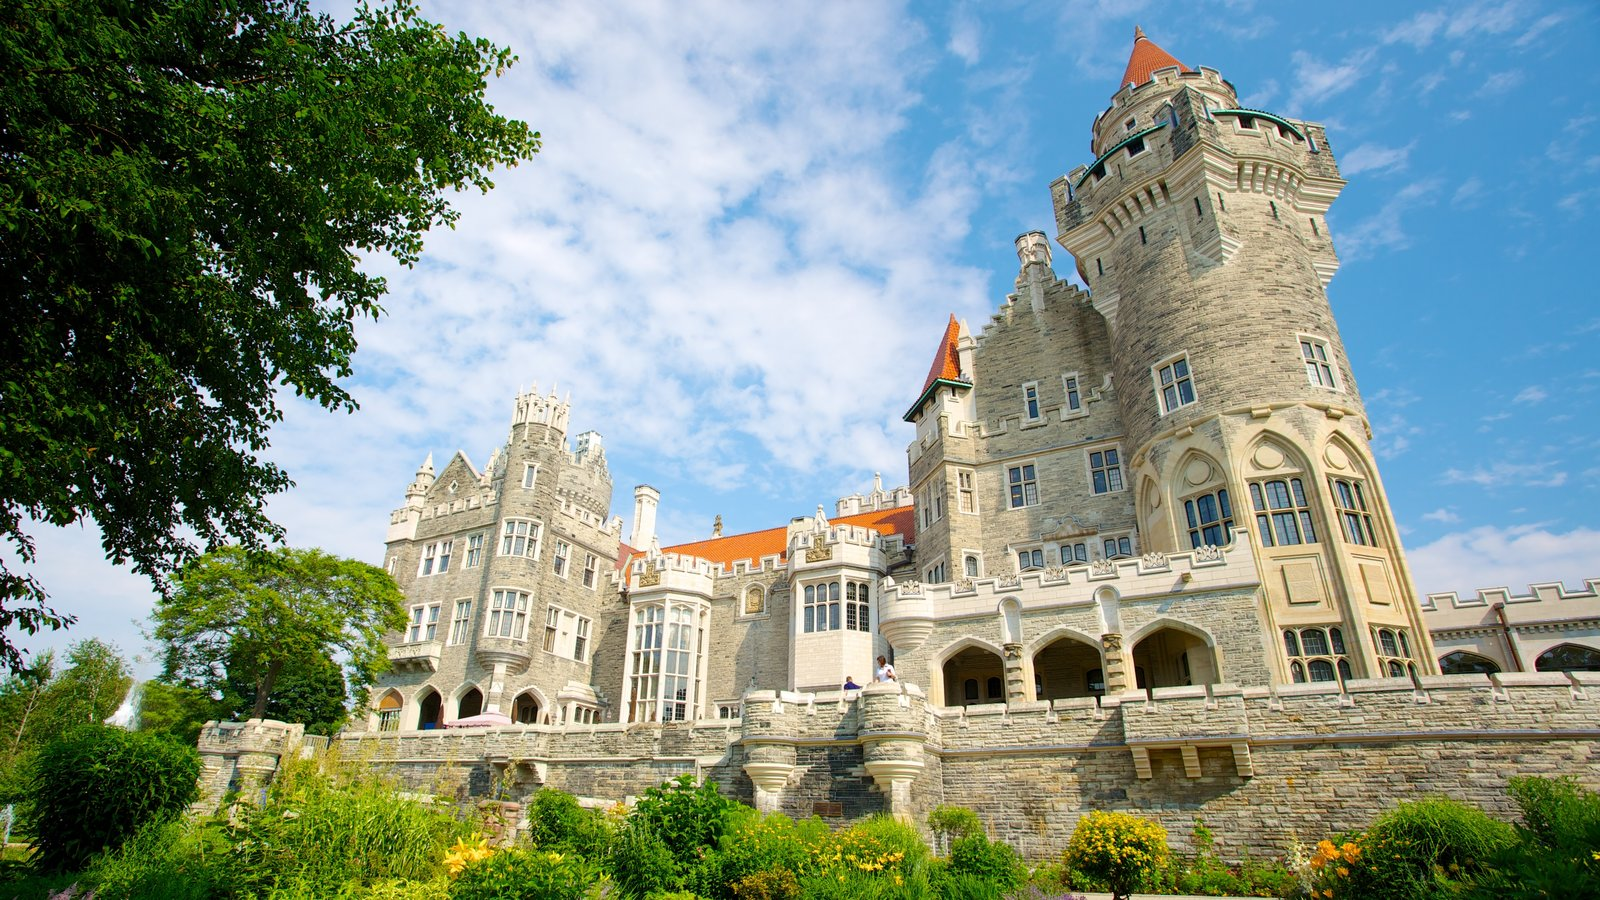 Castles palaces pictures view images of canada for Casa loma mansion toronto